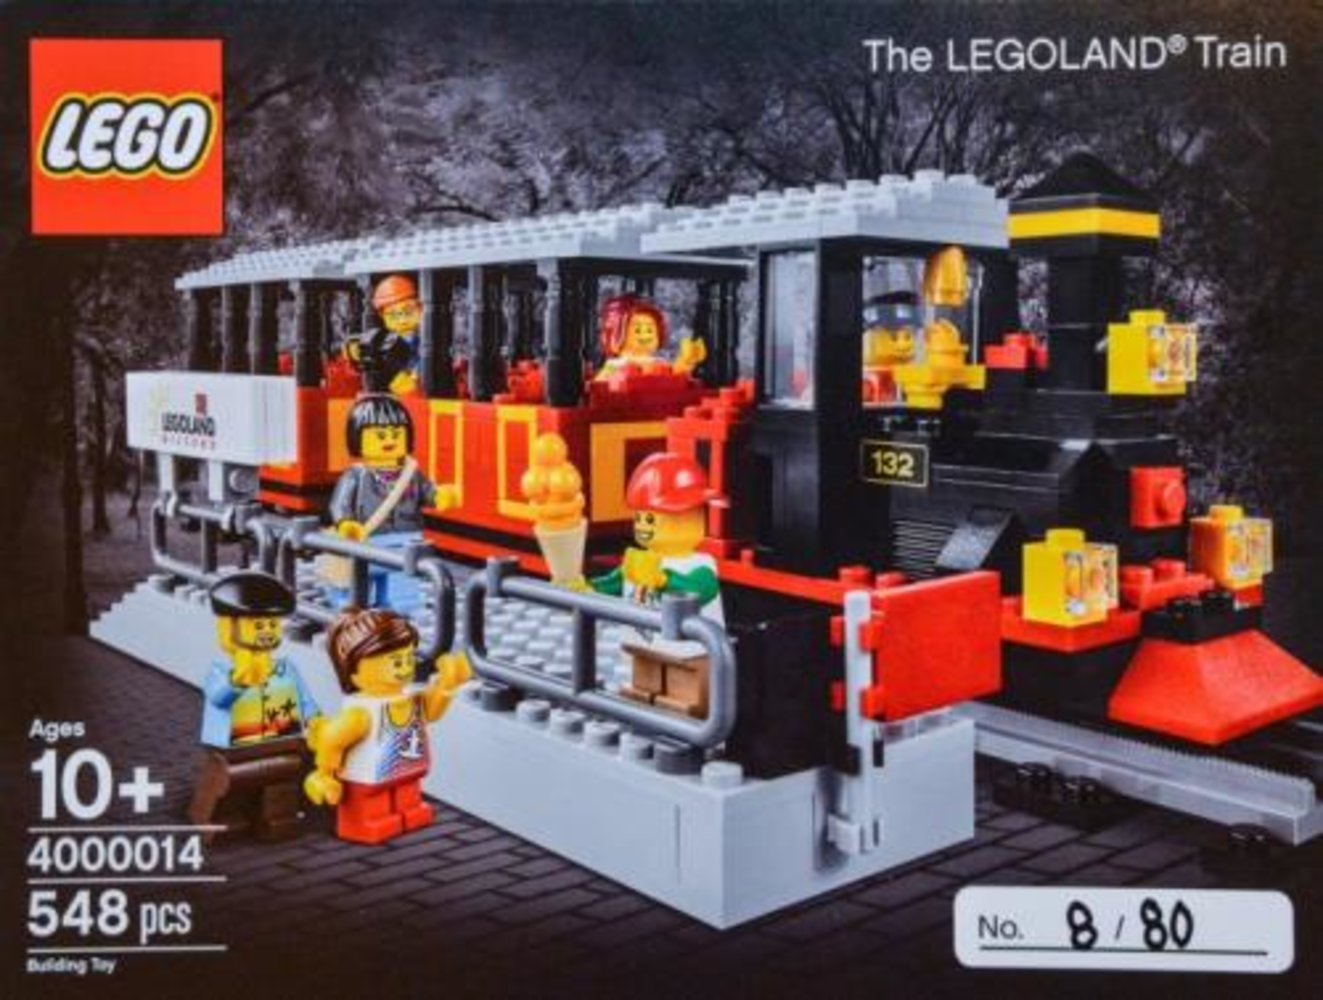 The LEGOLAND Train (LEGO Inside Tour Version)